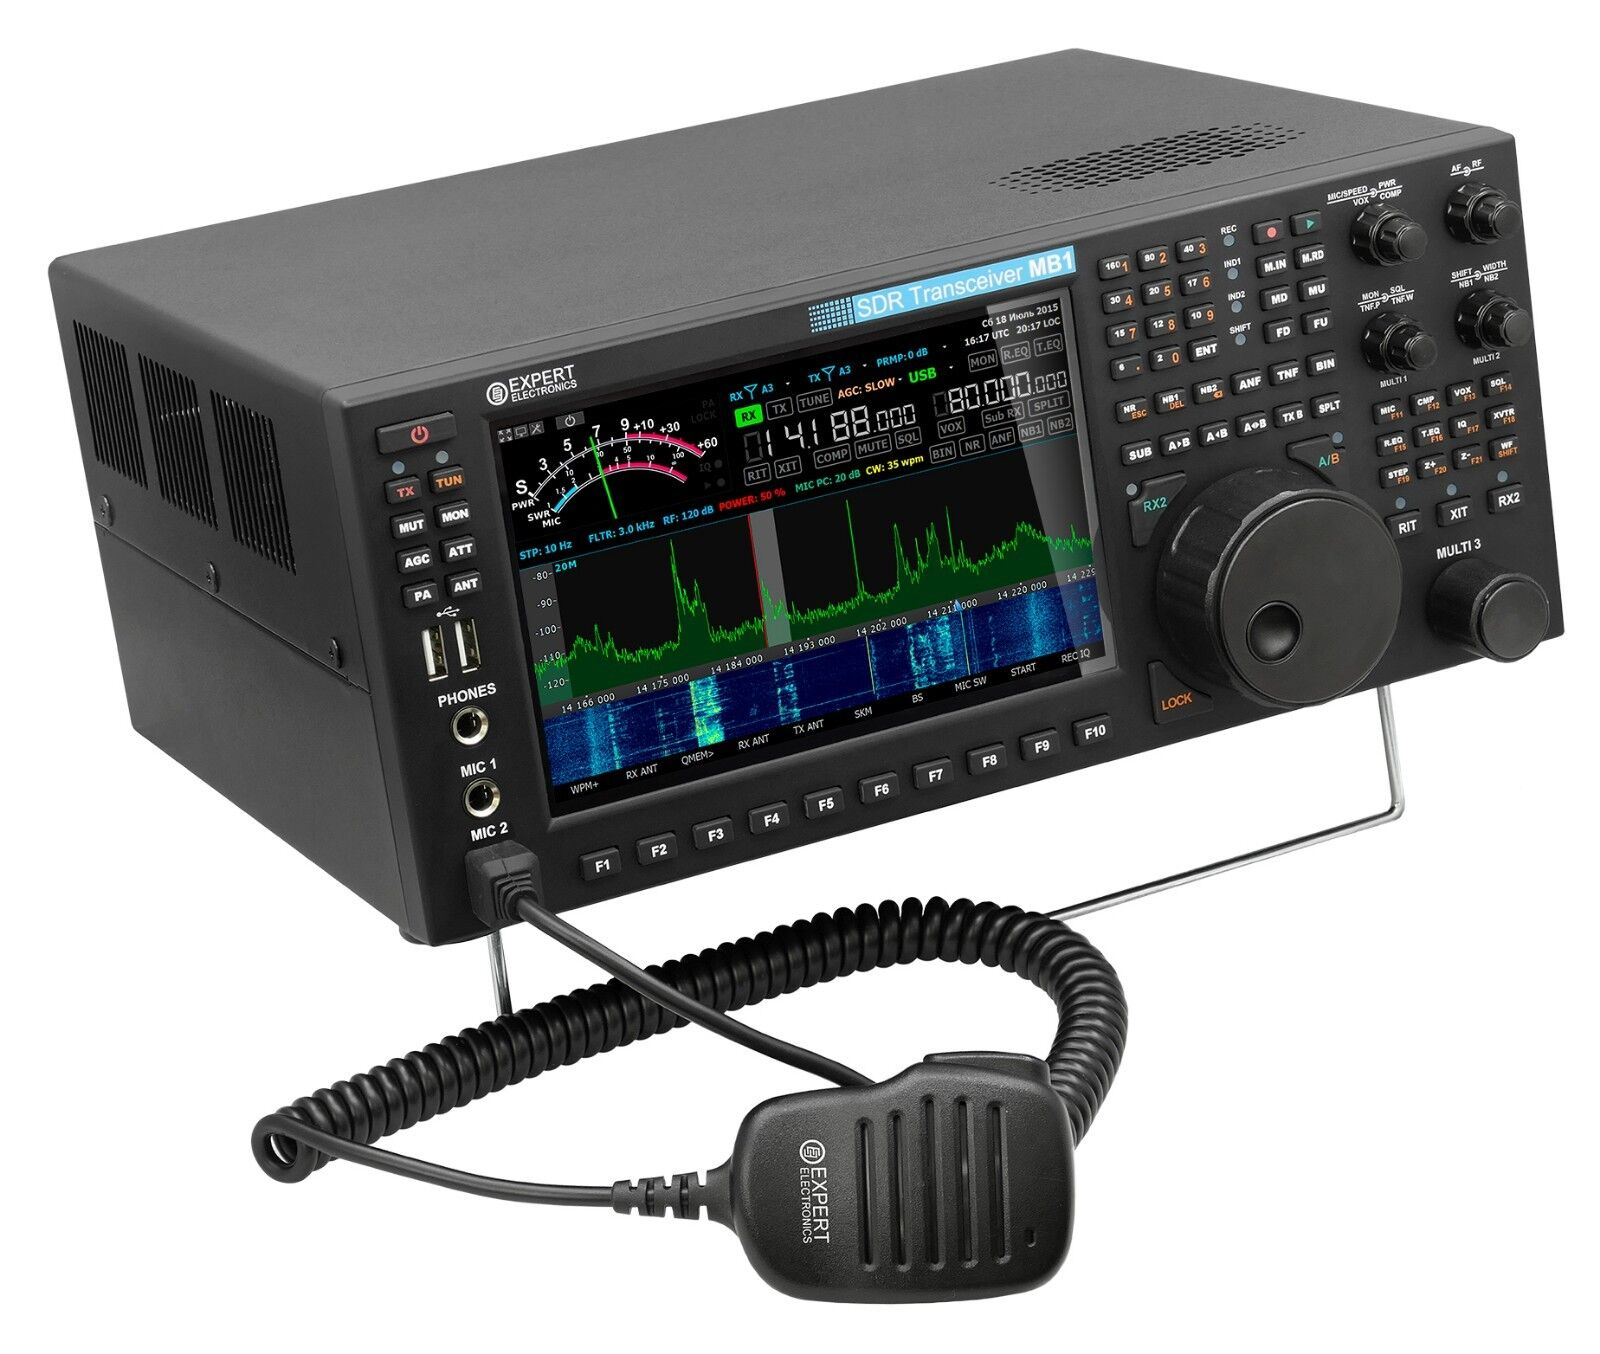 Expert Electronics MB1 HF 6M transceiver 100W, 50W 2M SDR with knobs